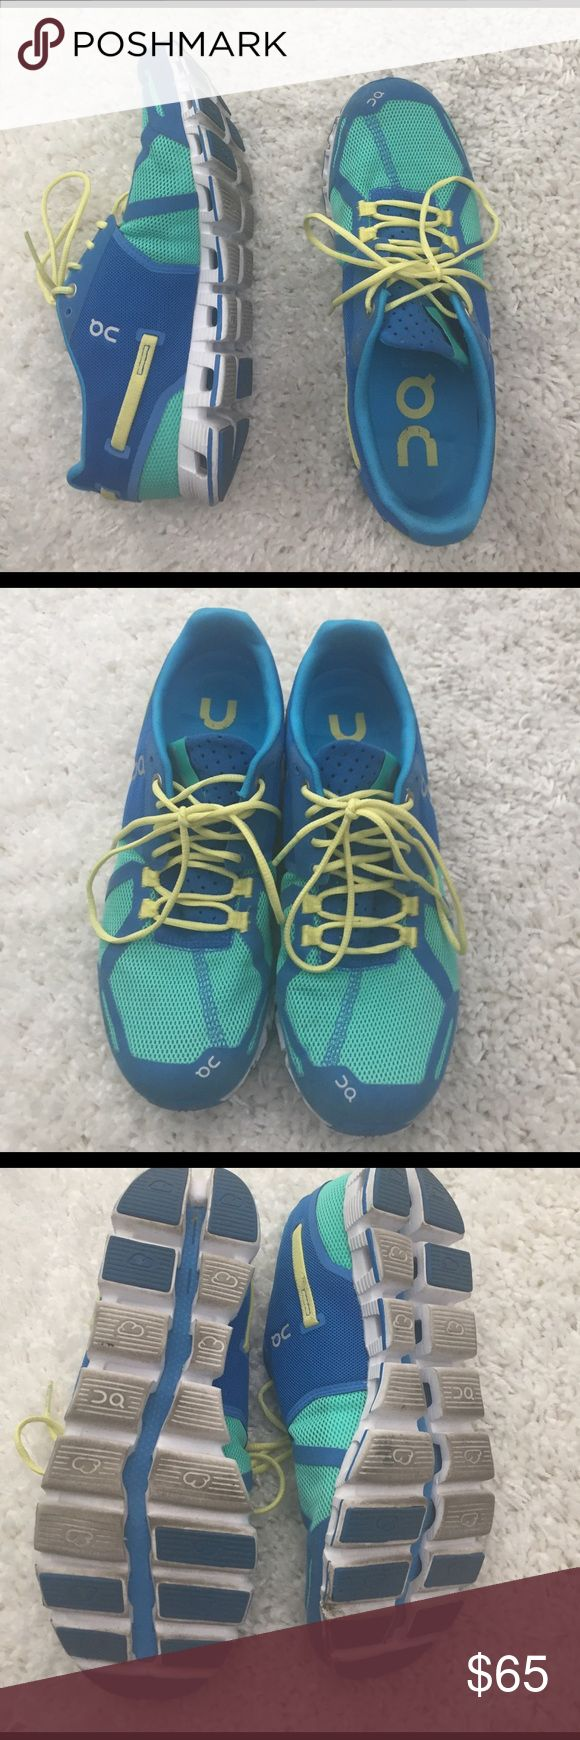 On cloud Swiss running shoes On cloud Swiss brand running shoes size 8.5. Worn 3-5 times. Some dirt on soles but still in great condition overall On running Shoes Athletic Shoes